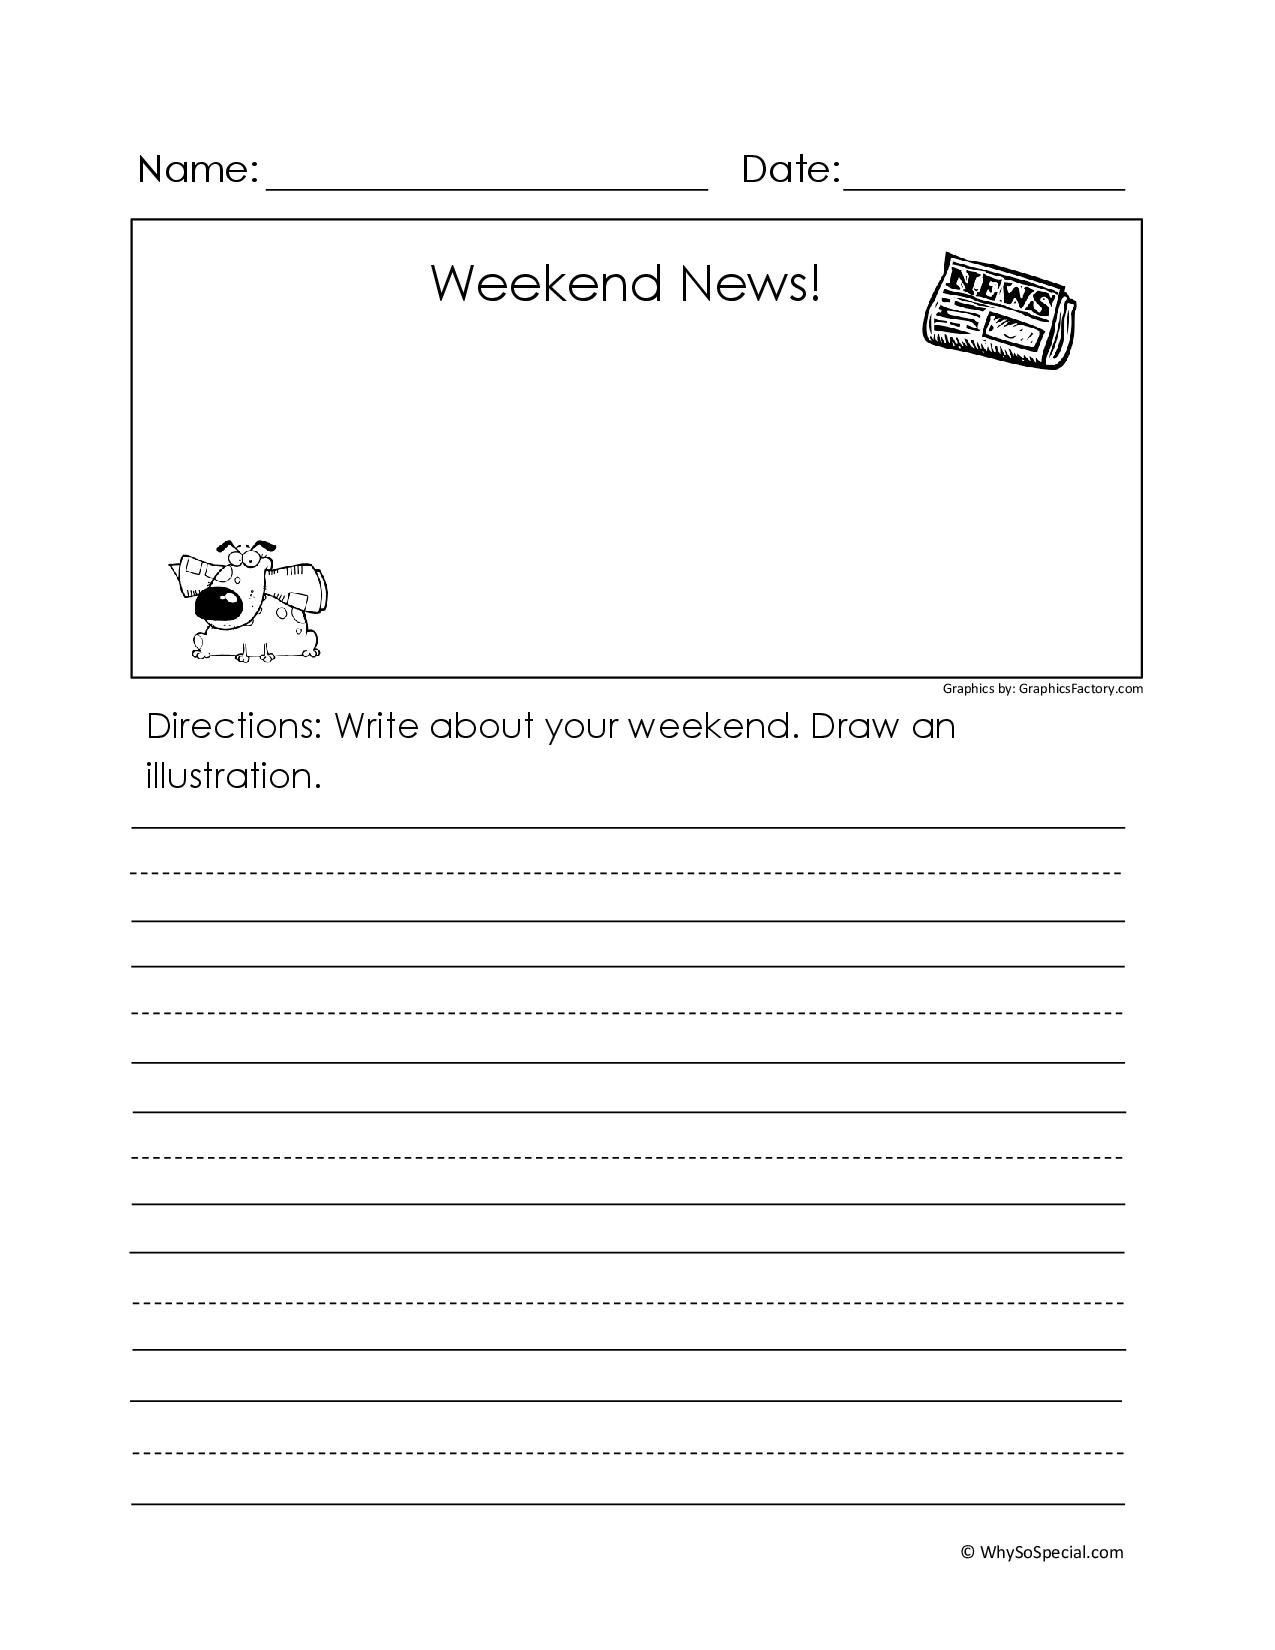 Start Each Monday With Writing Weekend News I Always Give